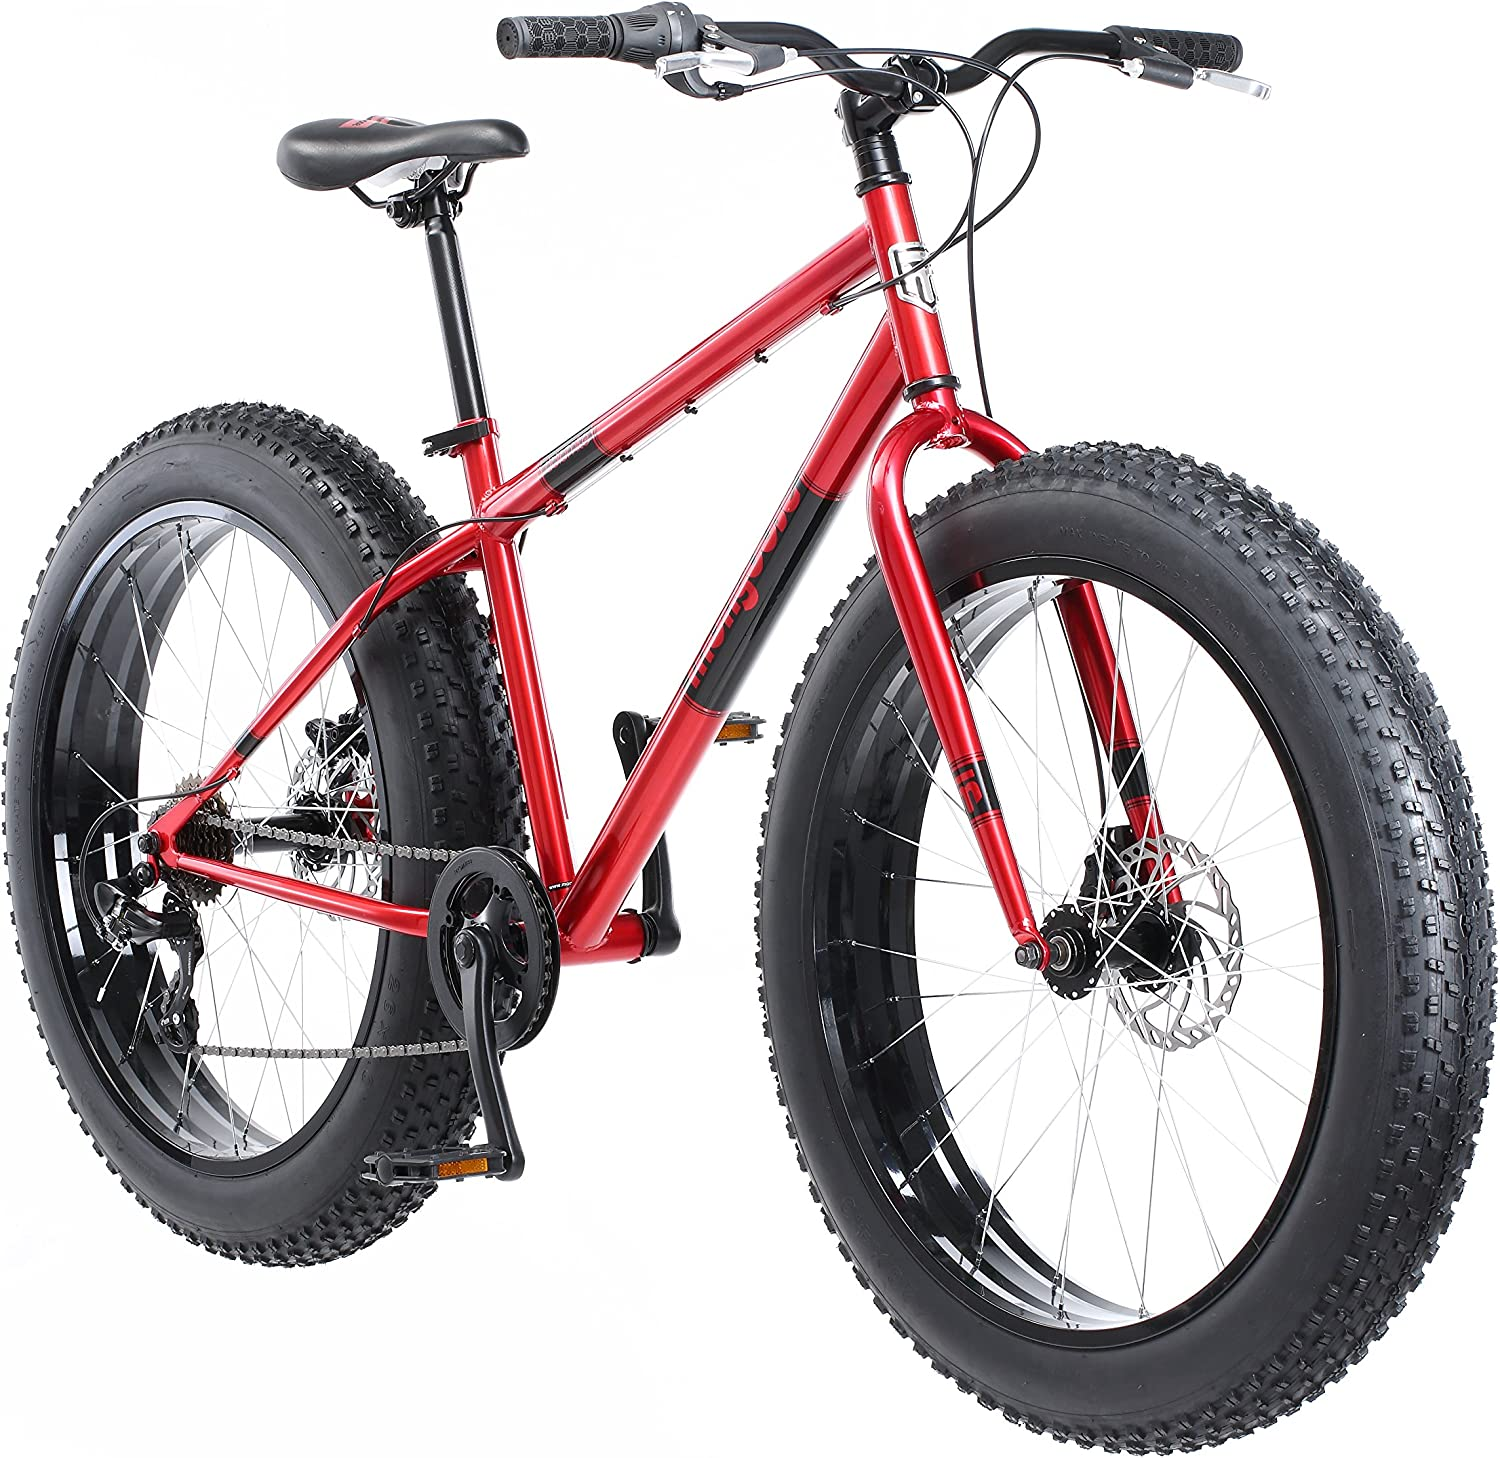 Mongoose Dolomite Fat Tire Mountain Bike, Featuring 17-Inch Medium High-Tensile Steel Frame, 7-Speed Shimano Drivetrain, Mechanical Disc Brakes, and 26-Inch Wheels, Light Blue, Navy Blue, and Red